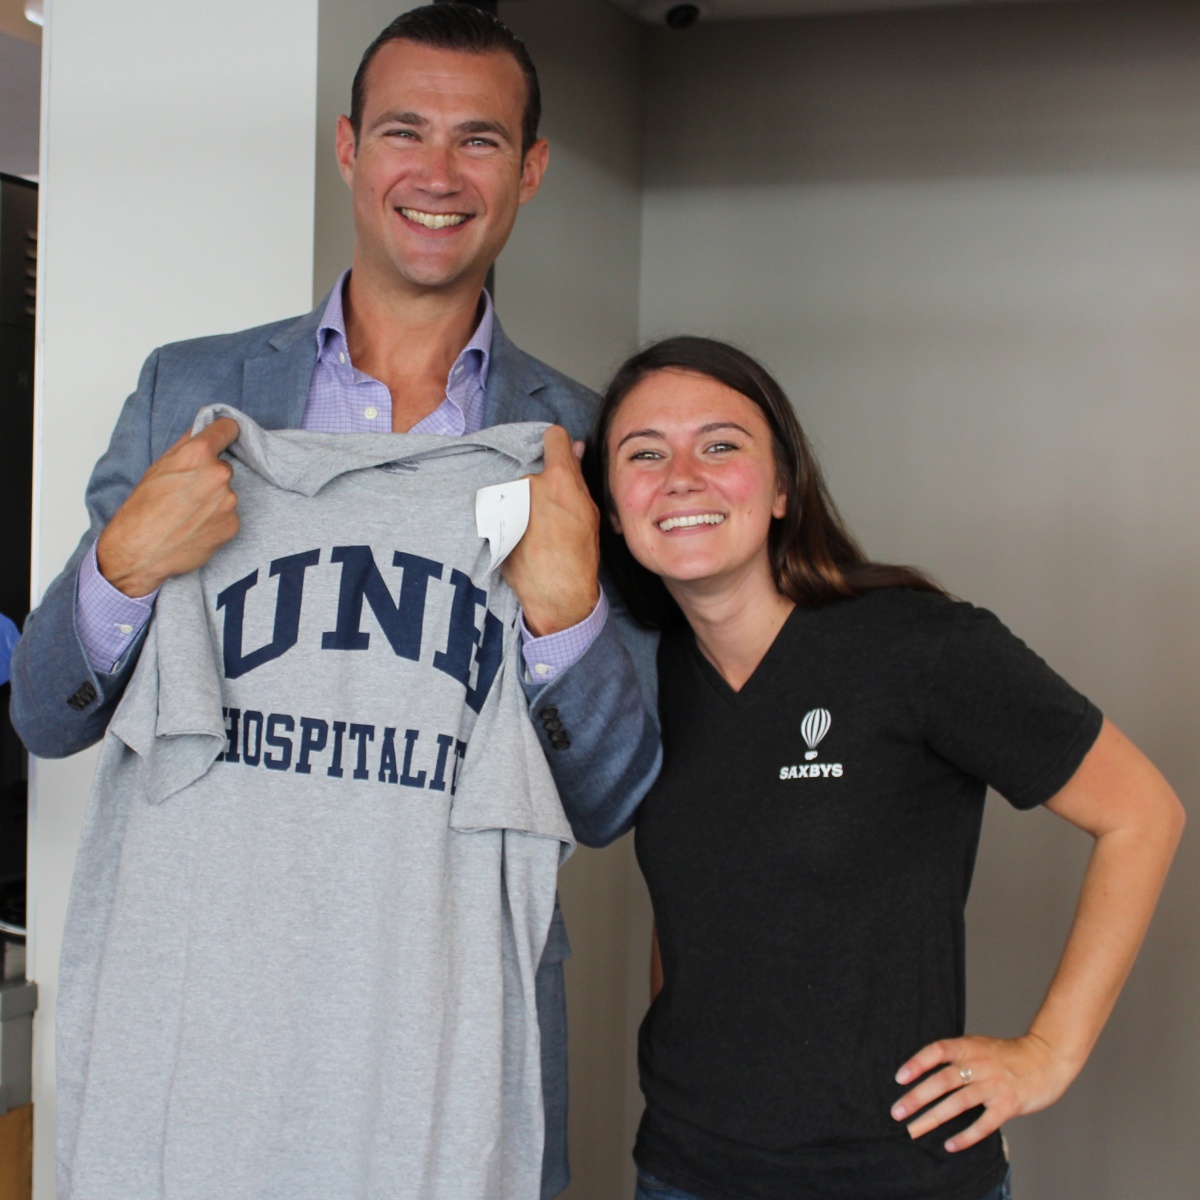 Crowe with Saxbys CEO Nick Bayer after gifting him with a UNH Hospitality T-shirt